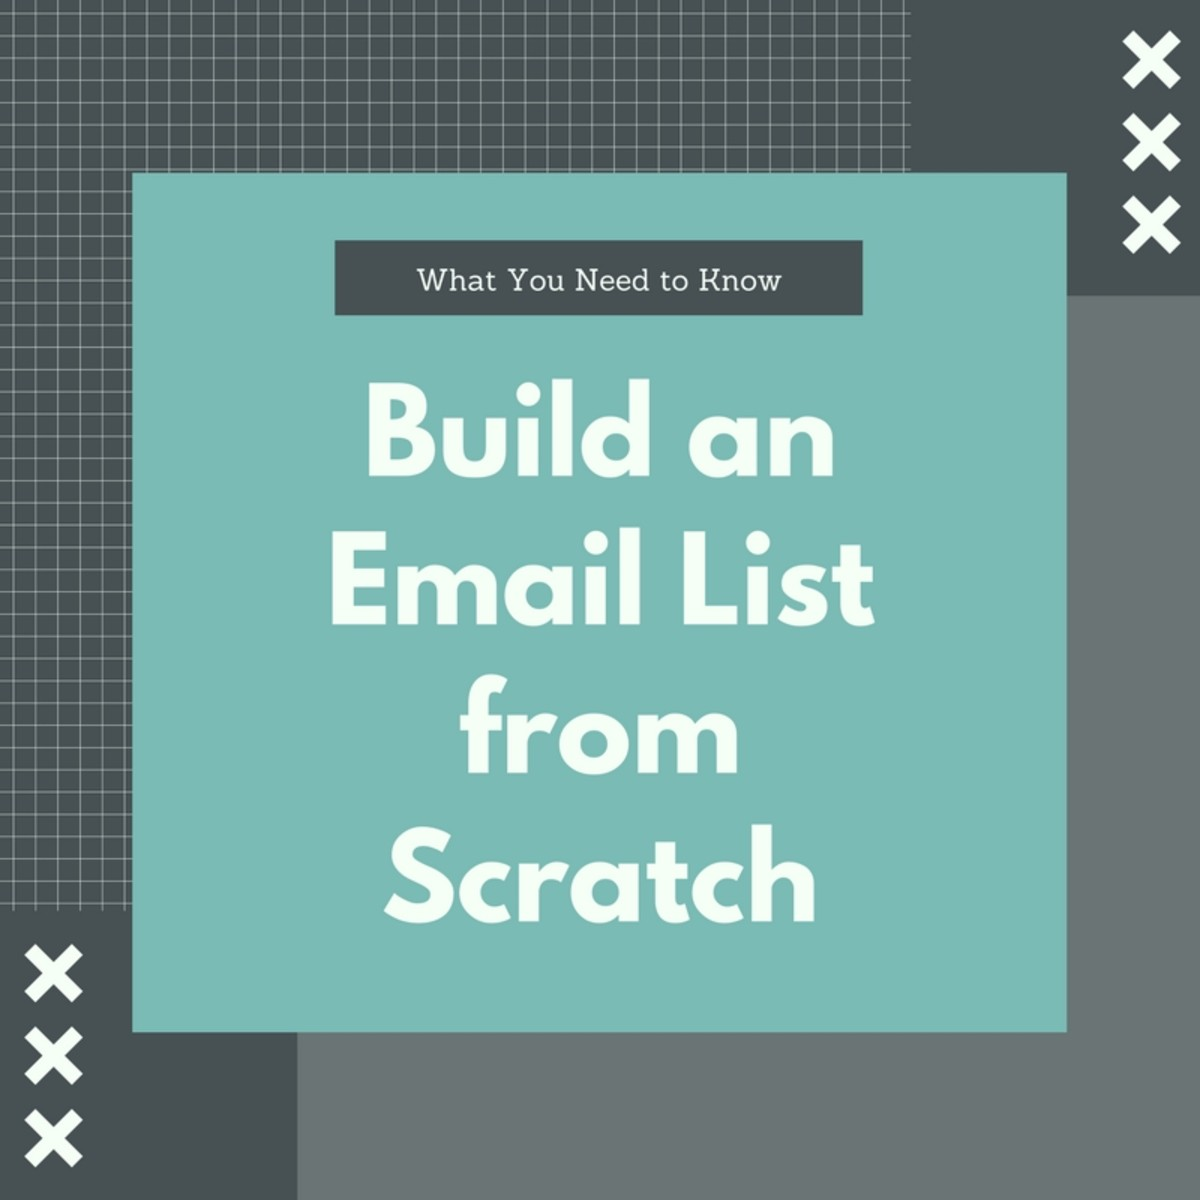 Build an Email Marketing List From Scratch: What You Need to Know